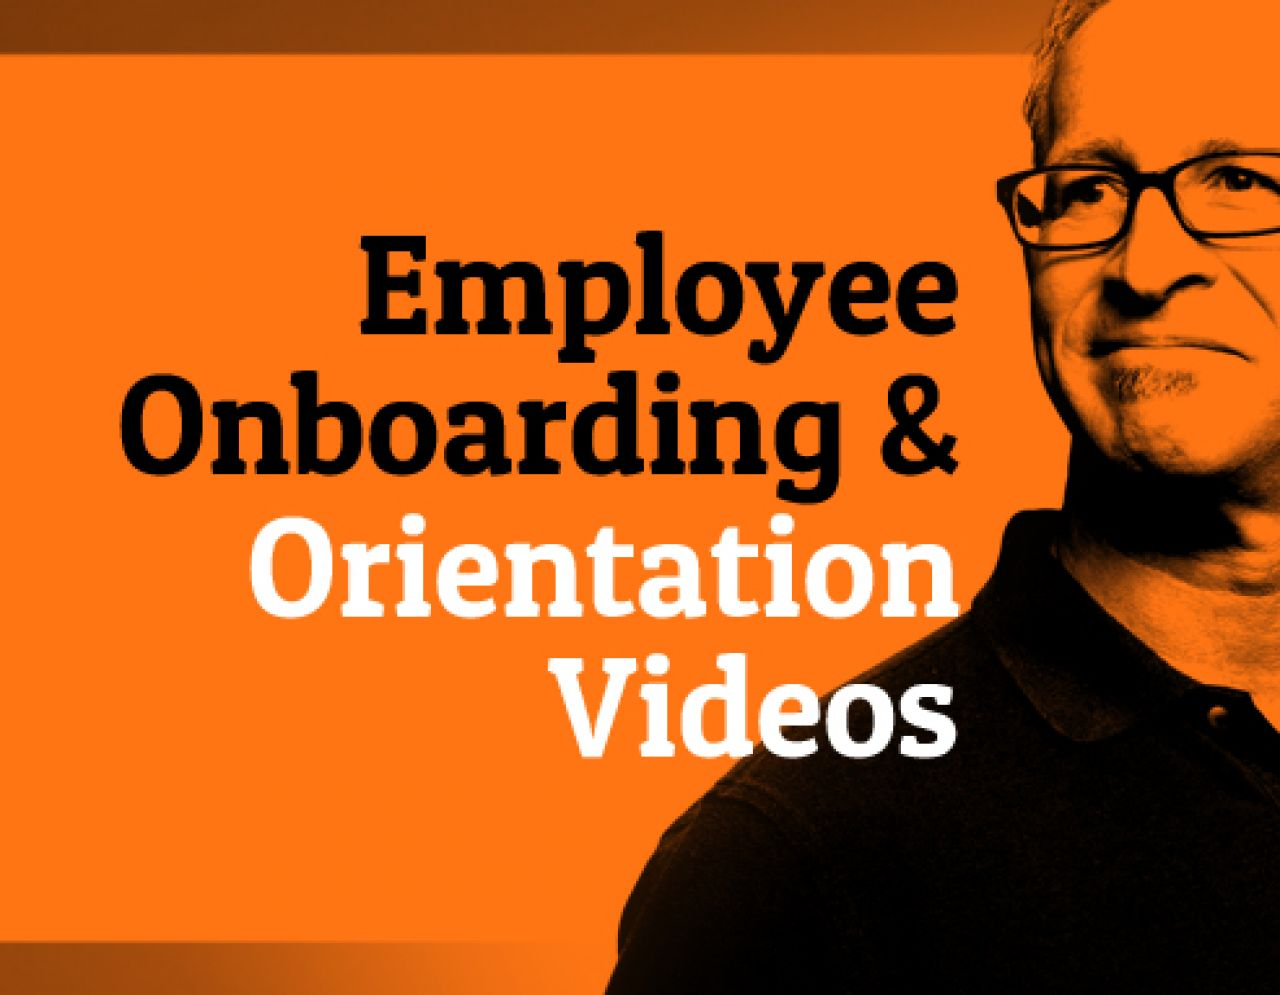 Employee Onboarding & Orientation Videos | Biteable